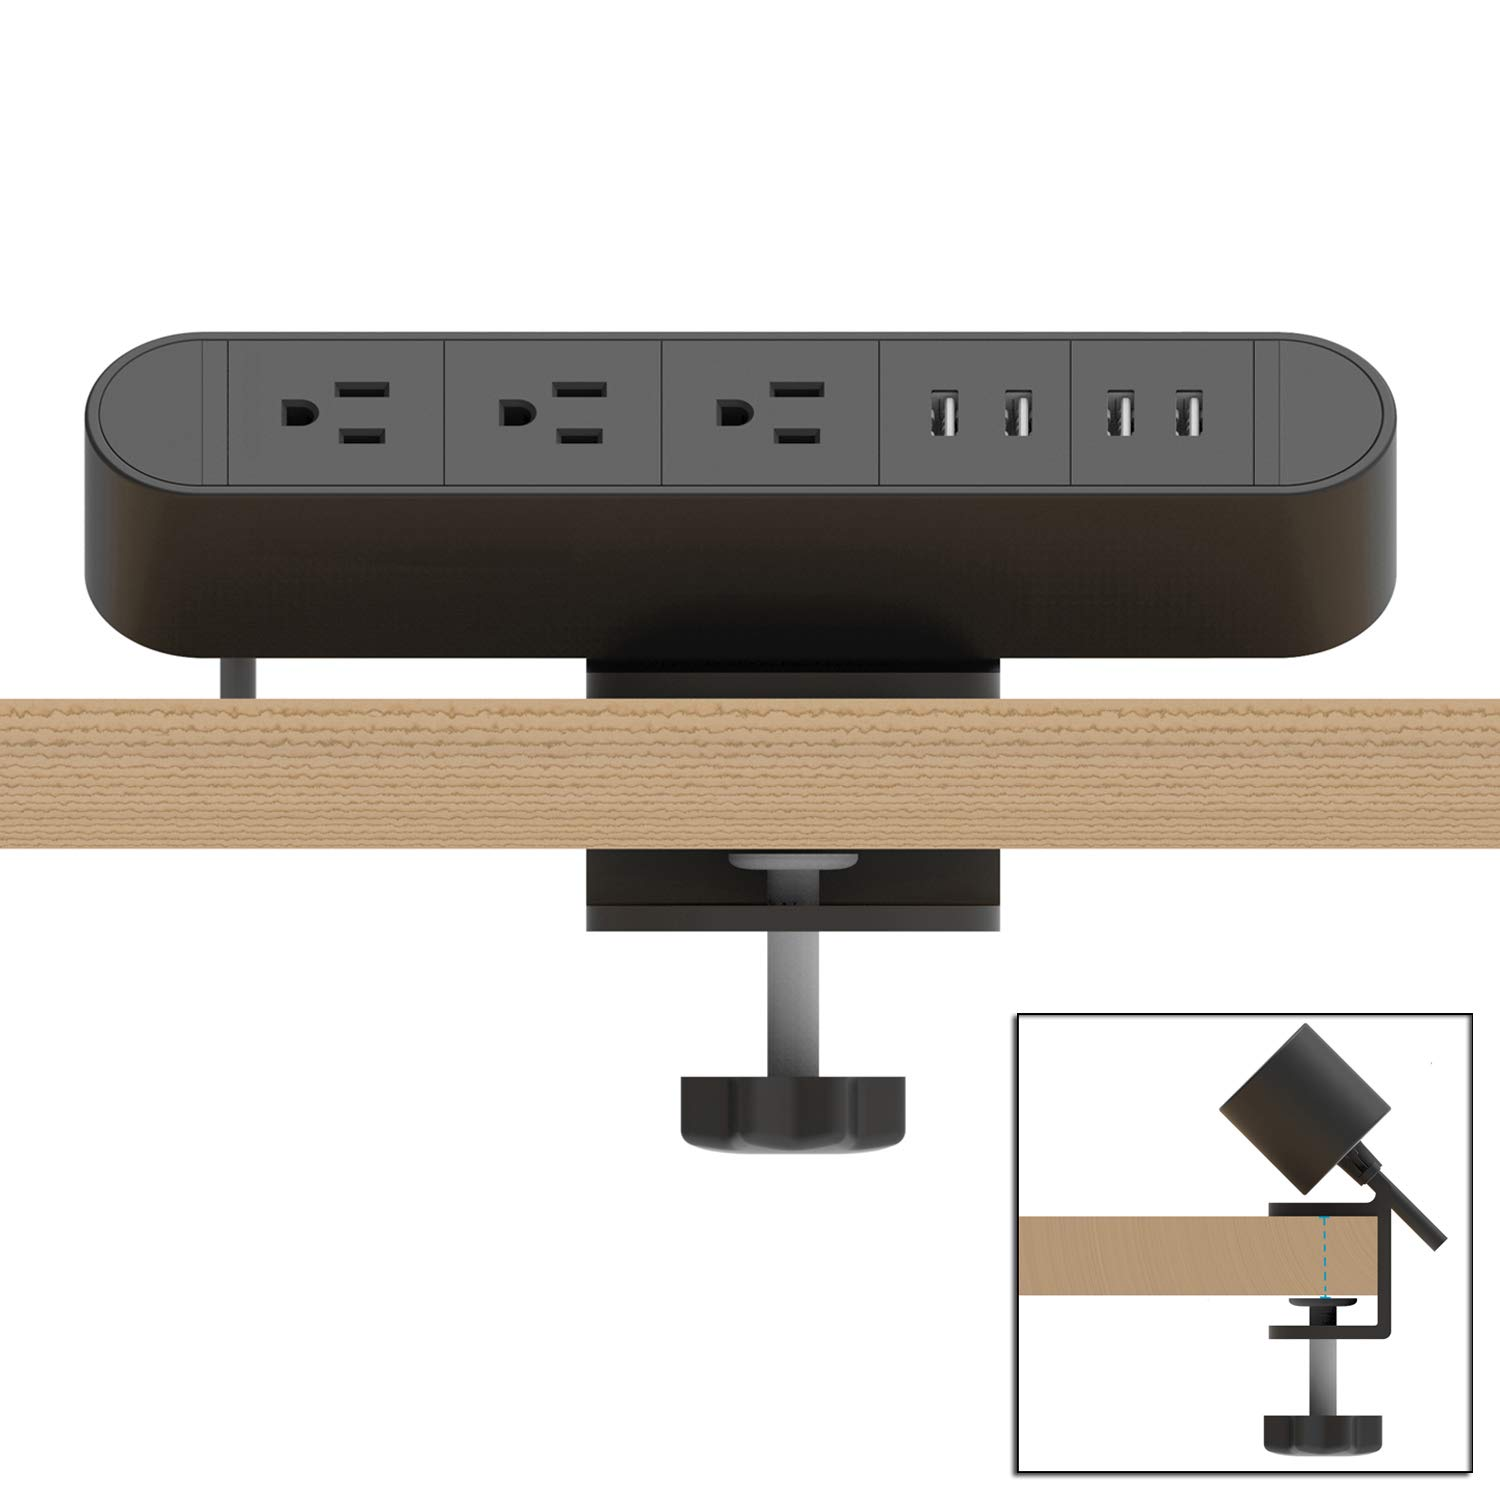 Desk Clamp Power Strip 3 Outlet with 4 USB,The Clamp Edge Mount Power Center,Aluminum Alloy Fireproof Power Strip,Removable Desktop Mount Multi-Outlets for Home Office Reading